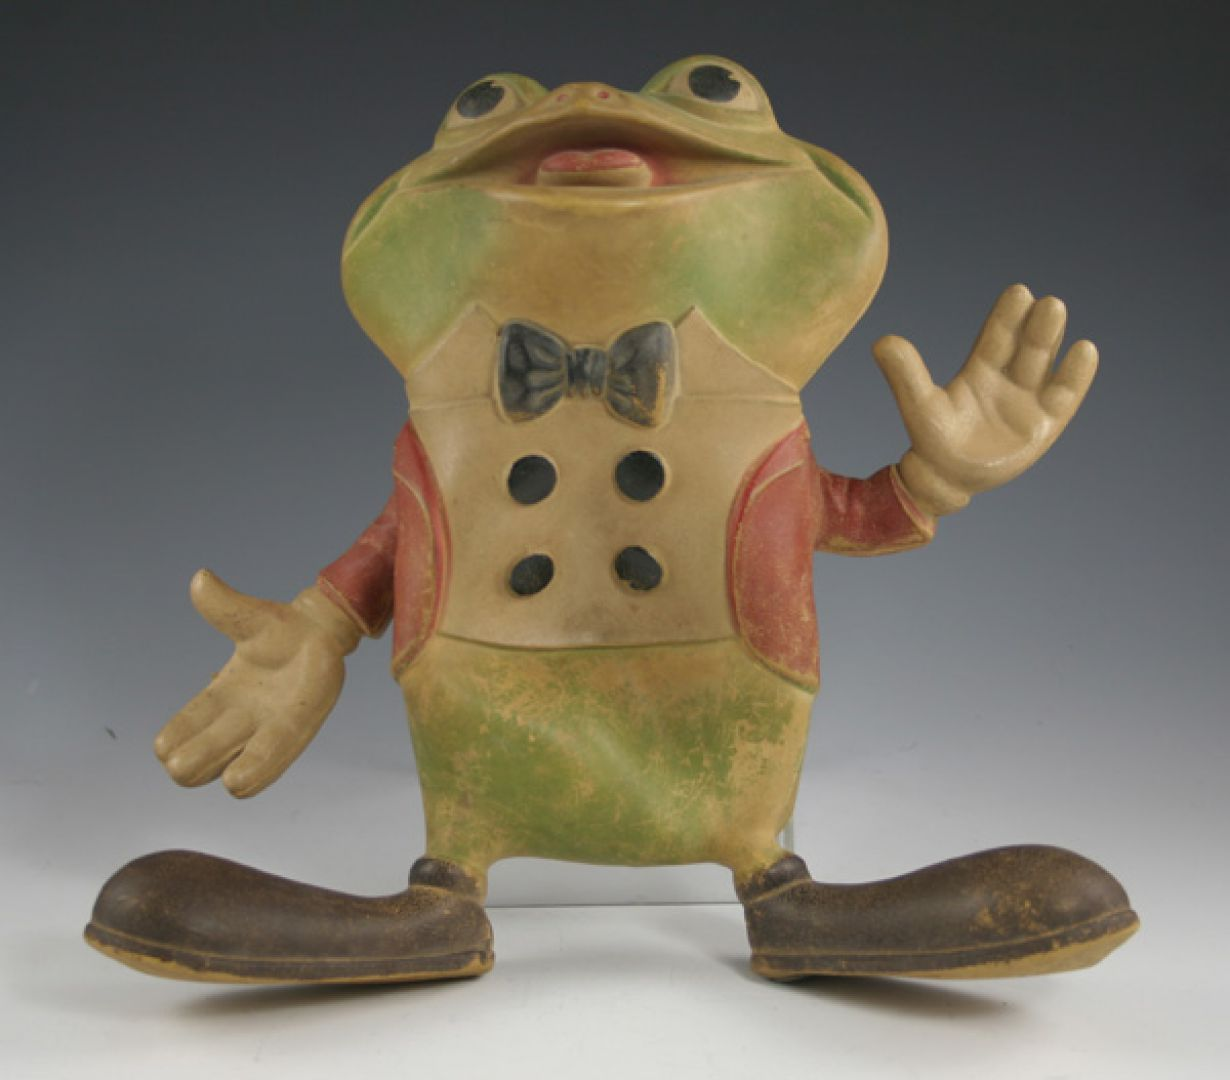 Lot 502: Rempel Rubber Toy Frog | Leonard Auction Sale #67